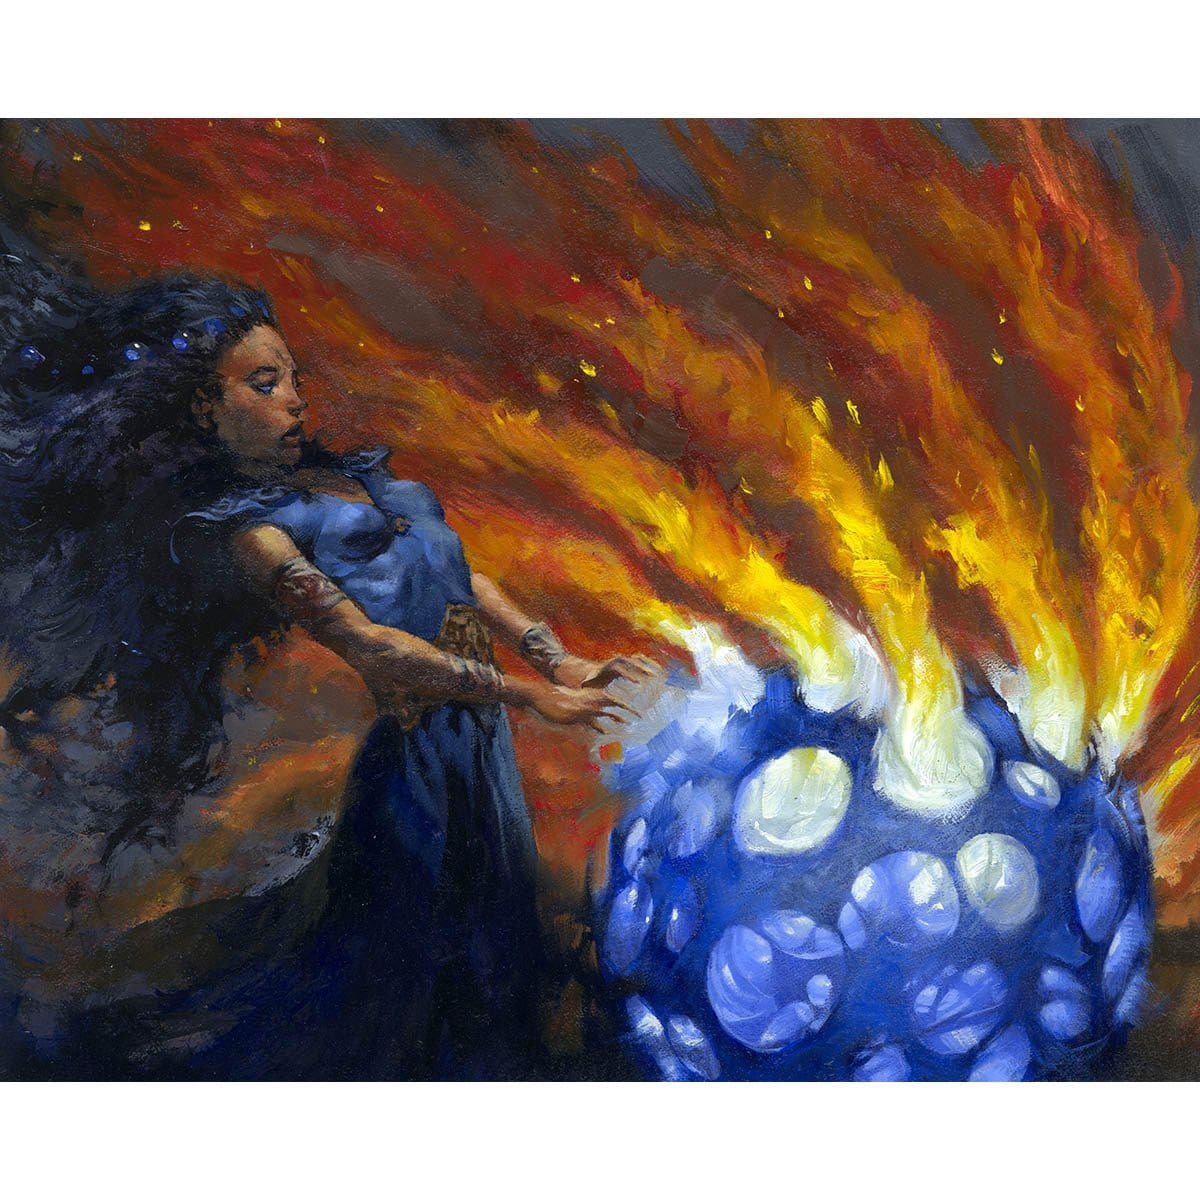 Blue Elemental Blast Print - Print - Original Magic Art - Accessories for Magic the Gathering and other card games